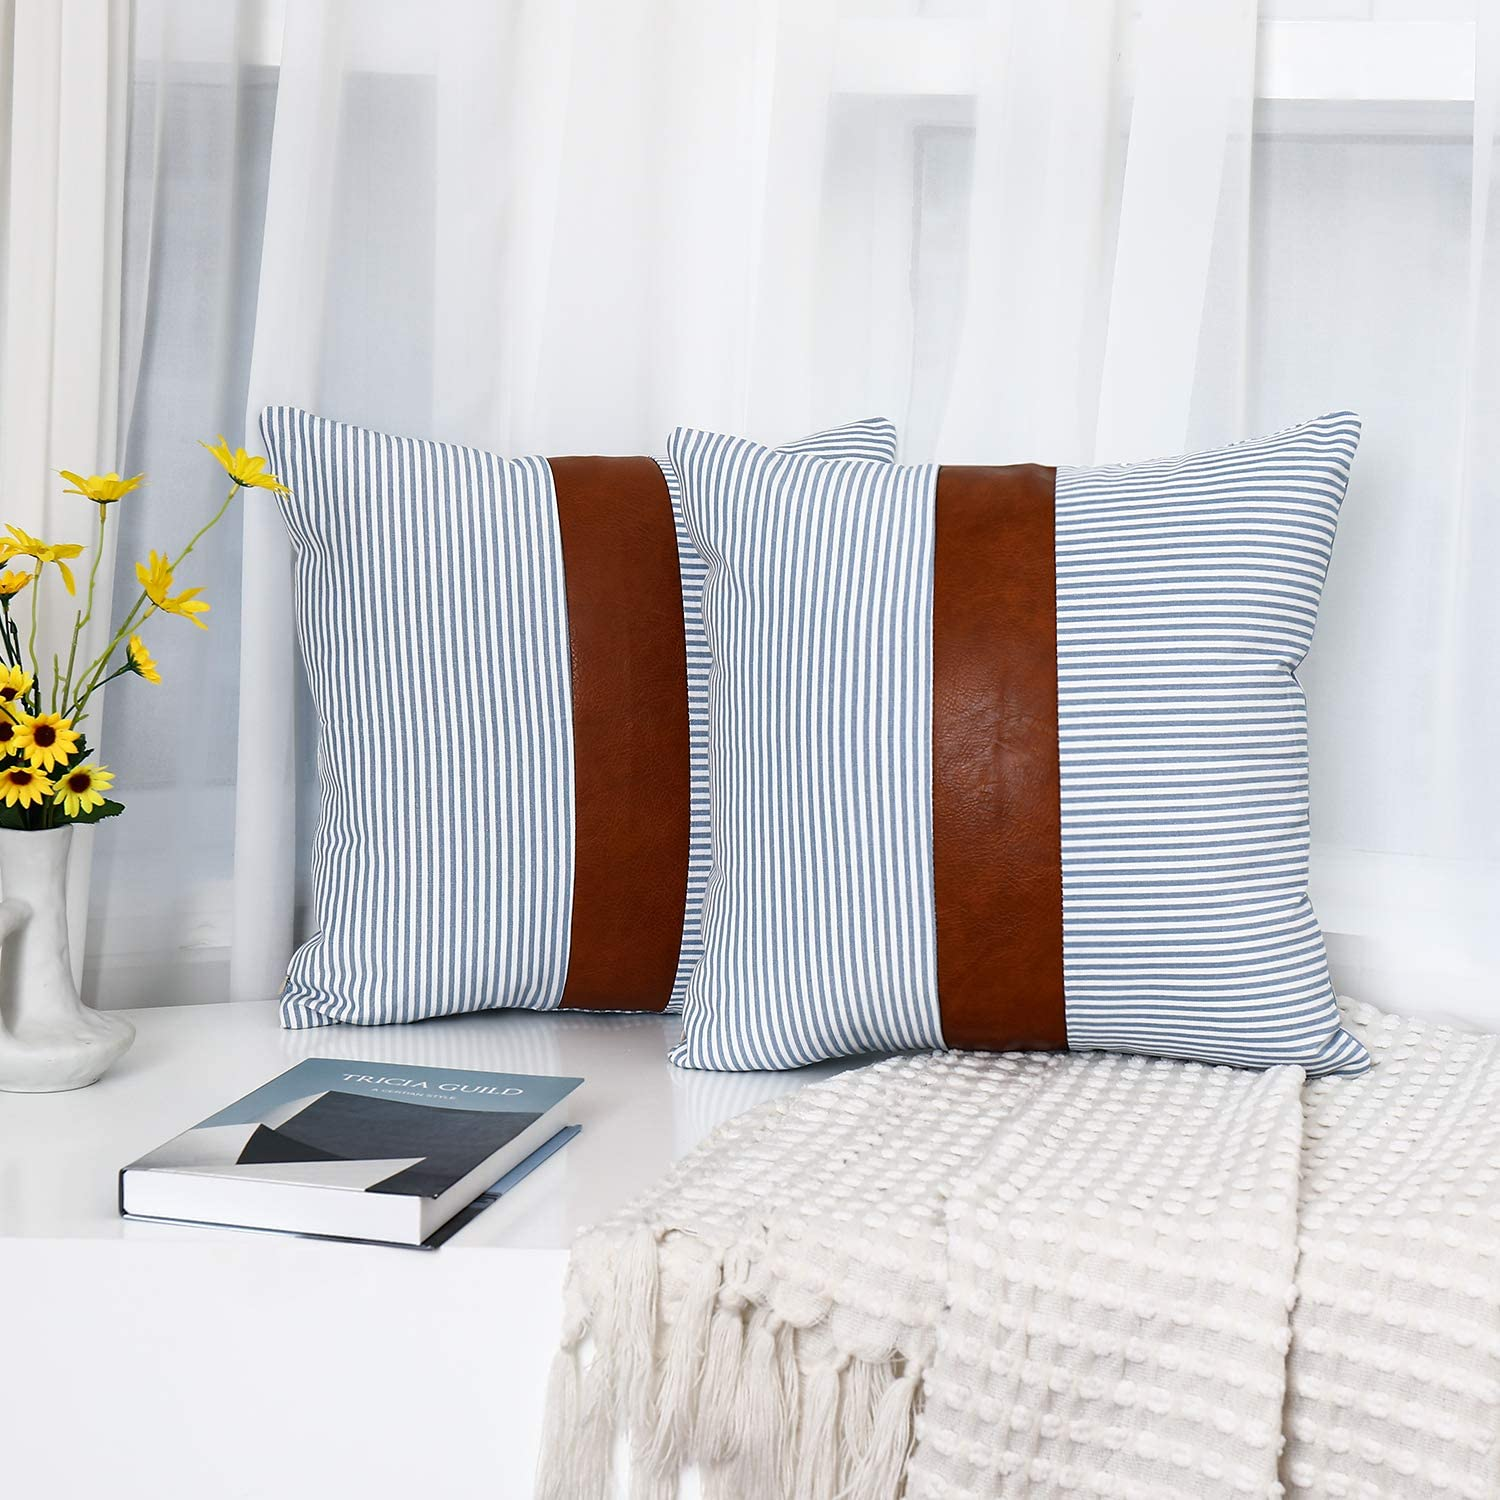 Tiaronics Decorative Throw Pillow Case Faux Stripe Faux Leather Cushion Cover for Sofa Couch Bed Boho Modern Decor Pillow 18x18 inch (2PK Light Blue)